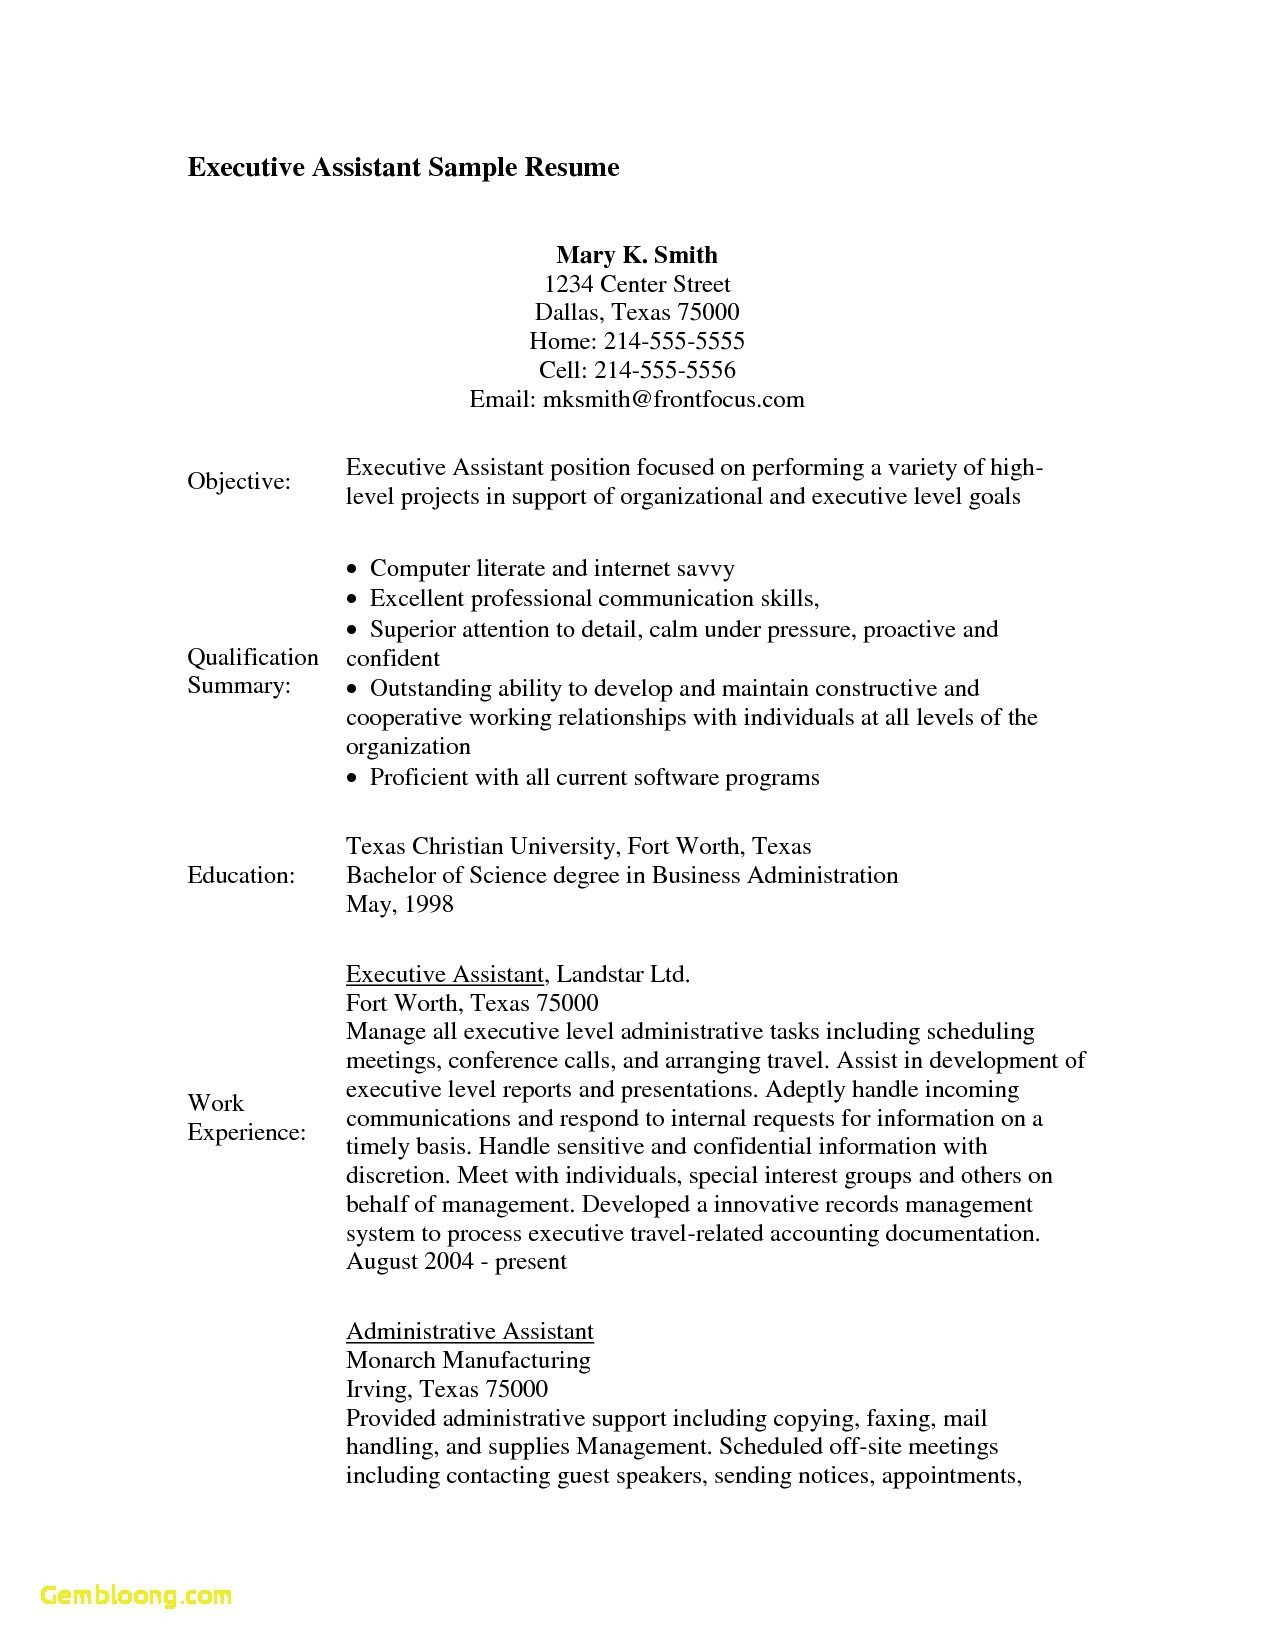 Medical assistant Summary Resume - Medical assistant Resume New Inspirational Medical assistant Resumes